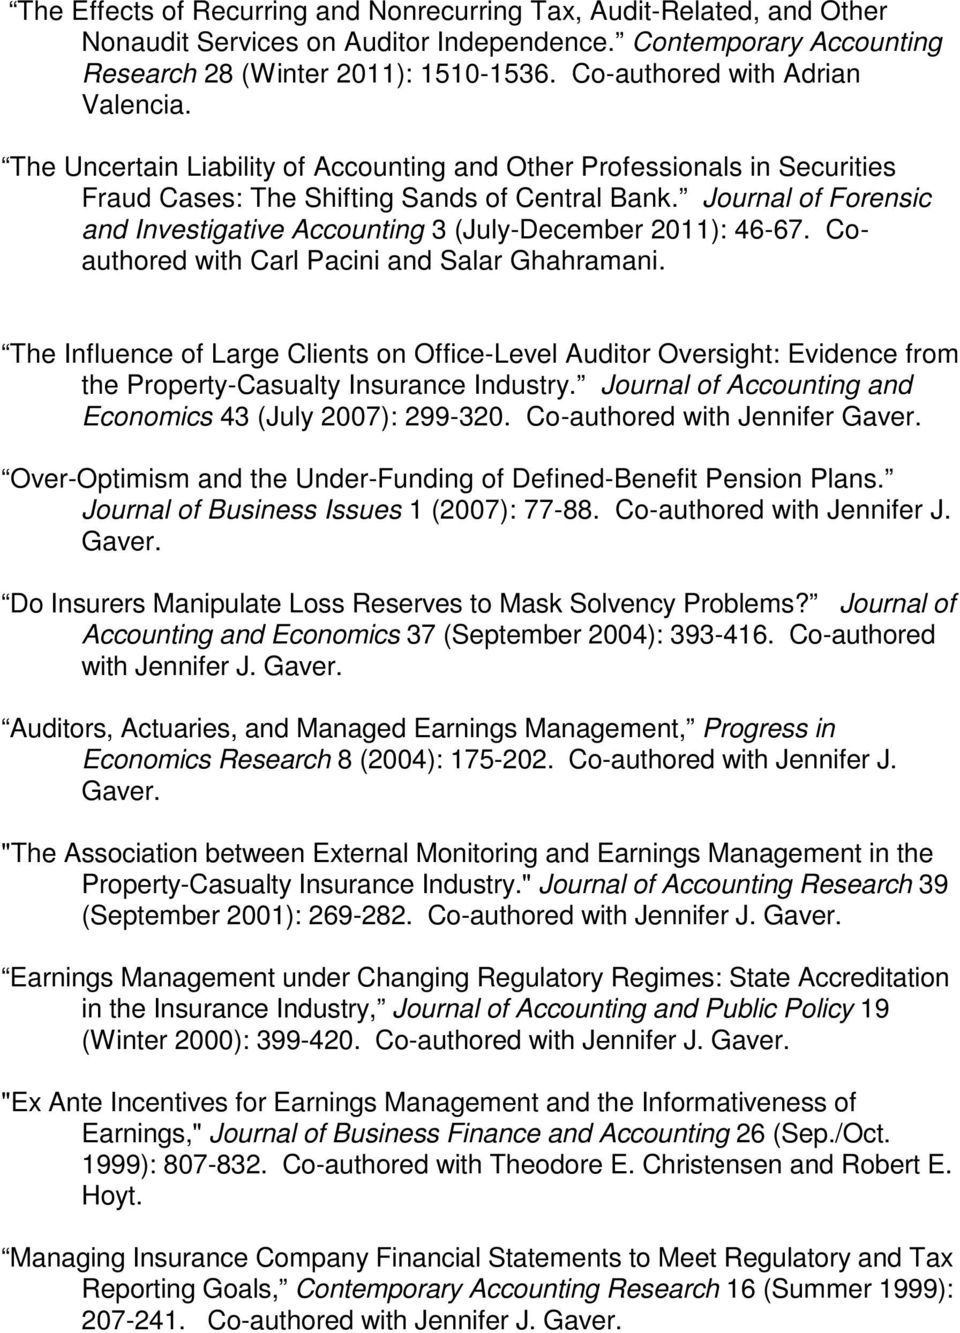 Journal of Forensic and Investigative Accounting 3 (July-December 2011): 46-67. Coauthored with Carl Pacini and Salar Ghahramani.